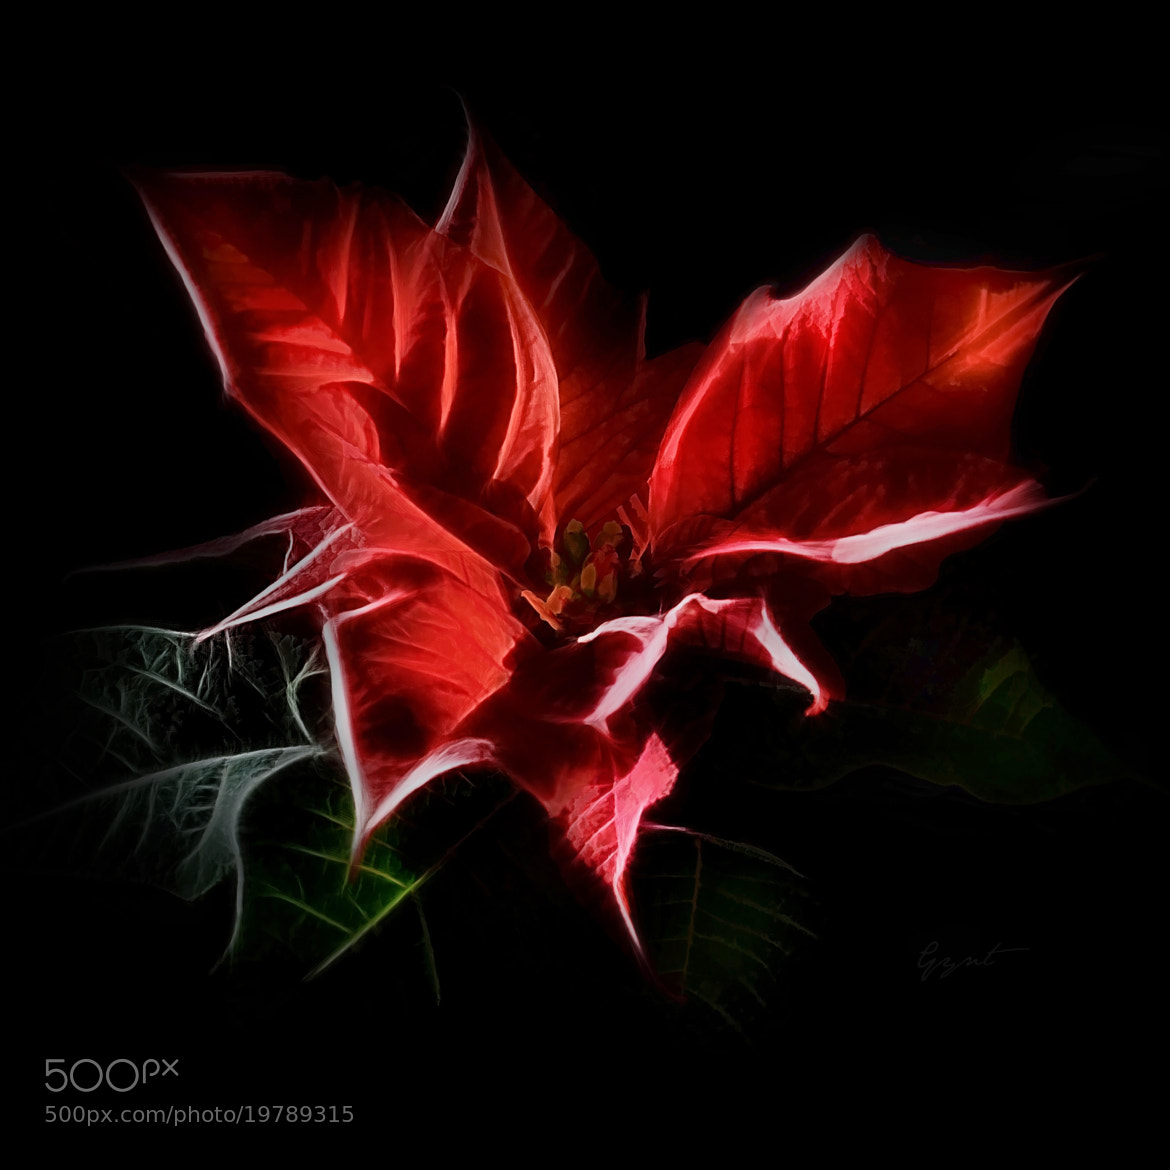 Photograph The Christmas Flower - Poinsettia by Gynt S on 500px